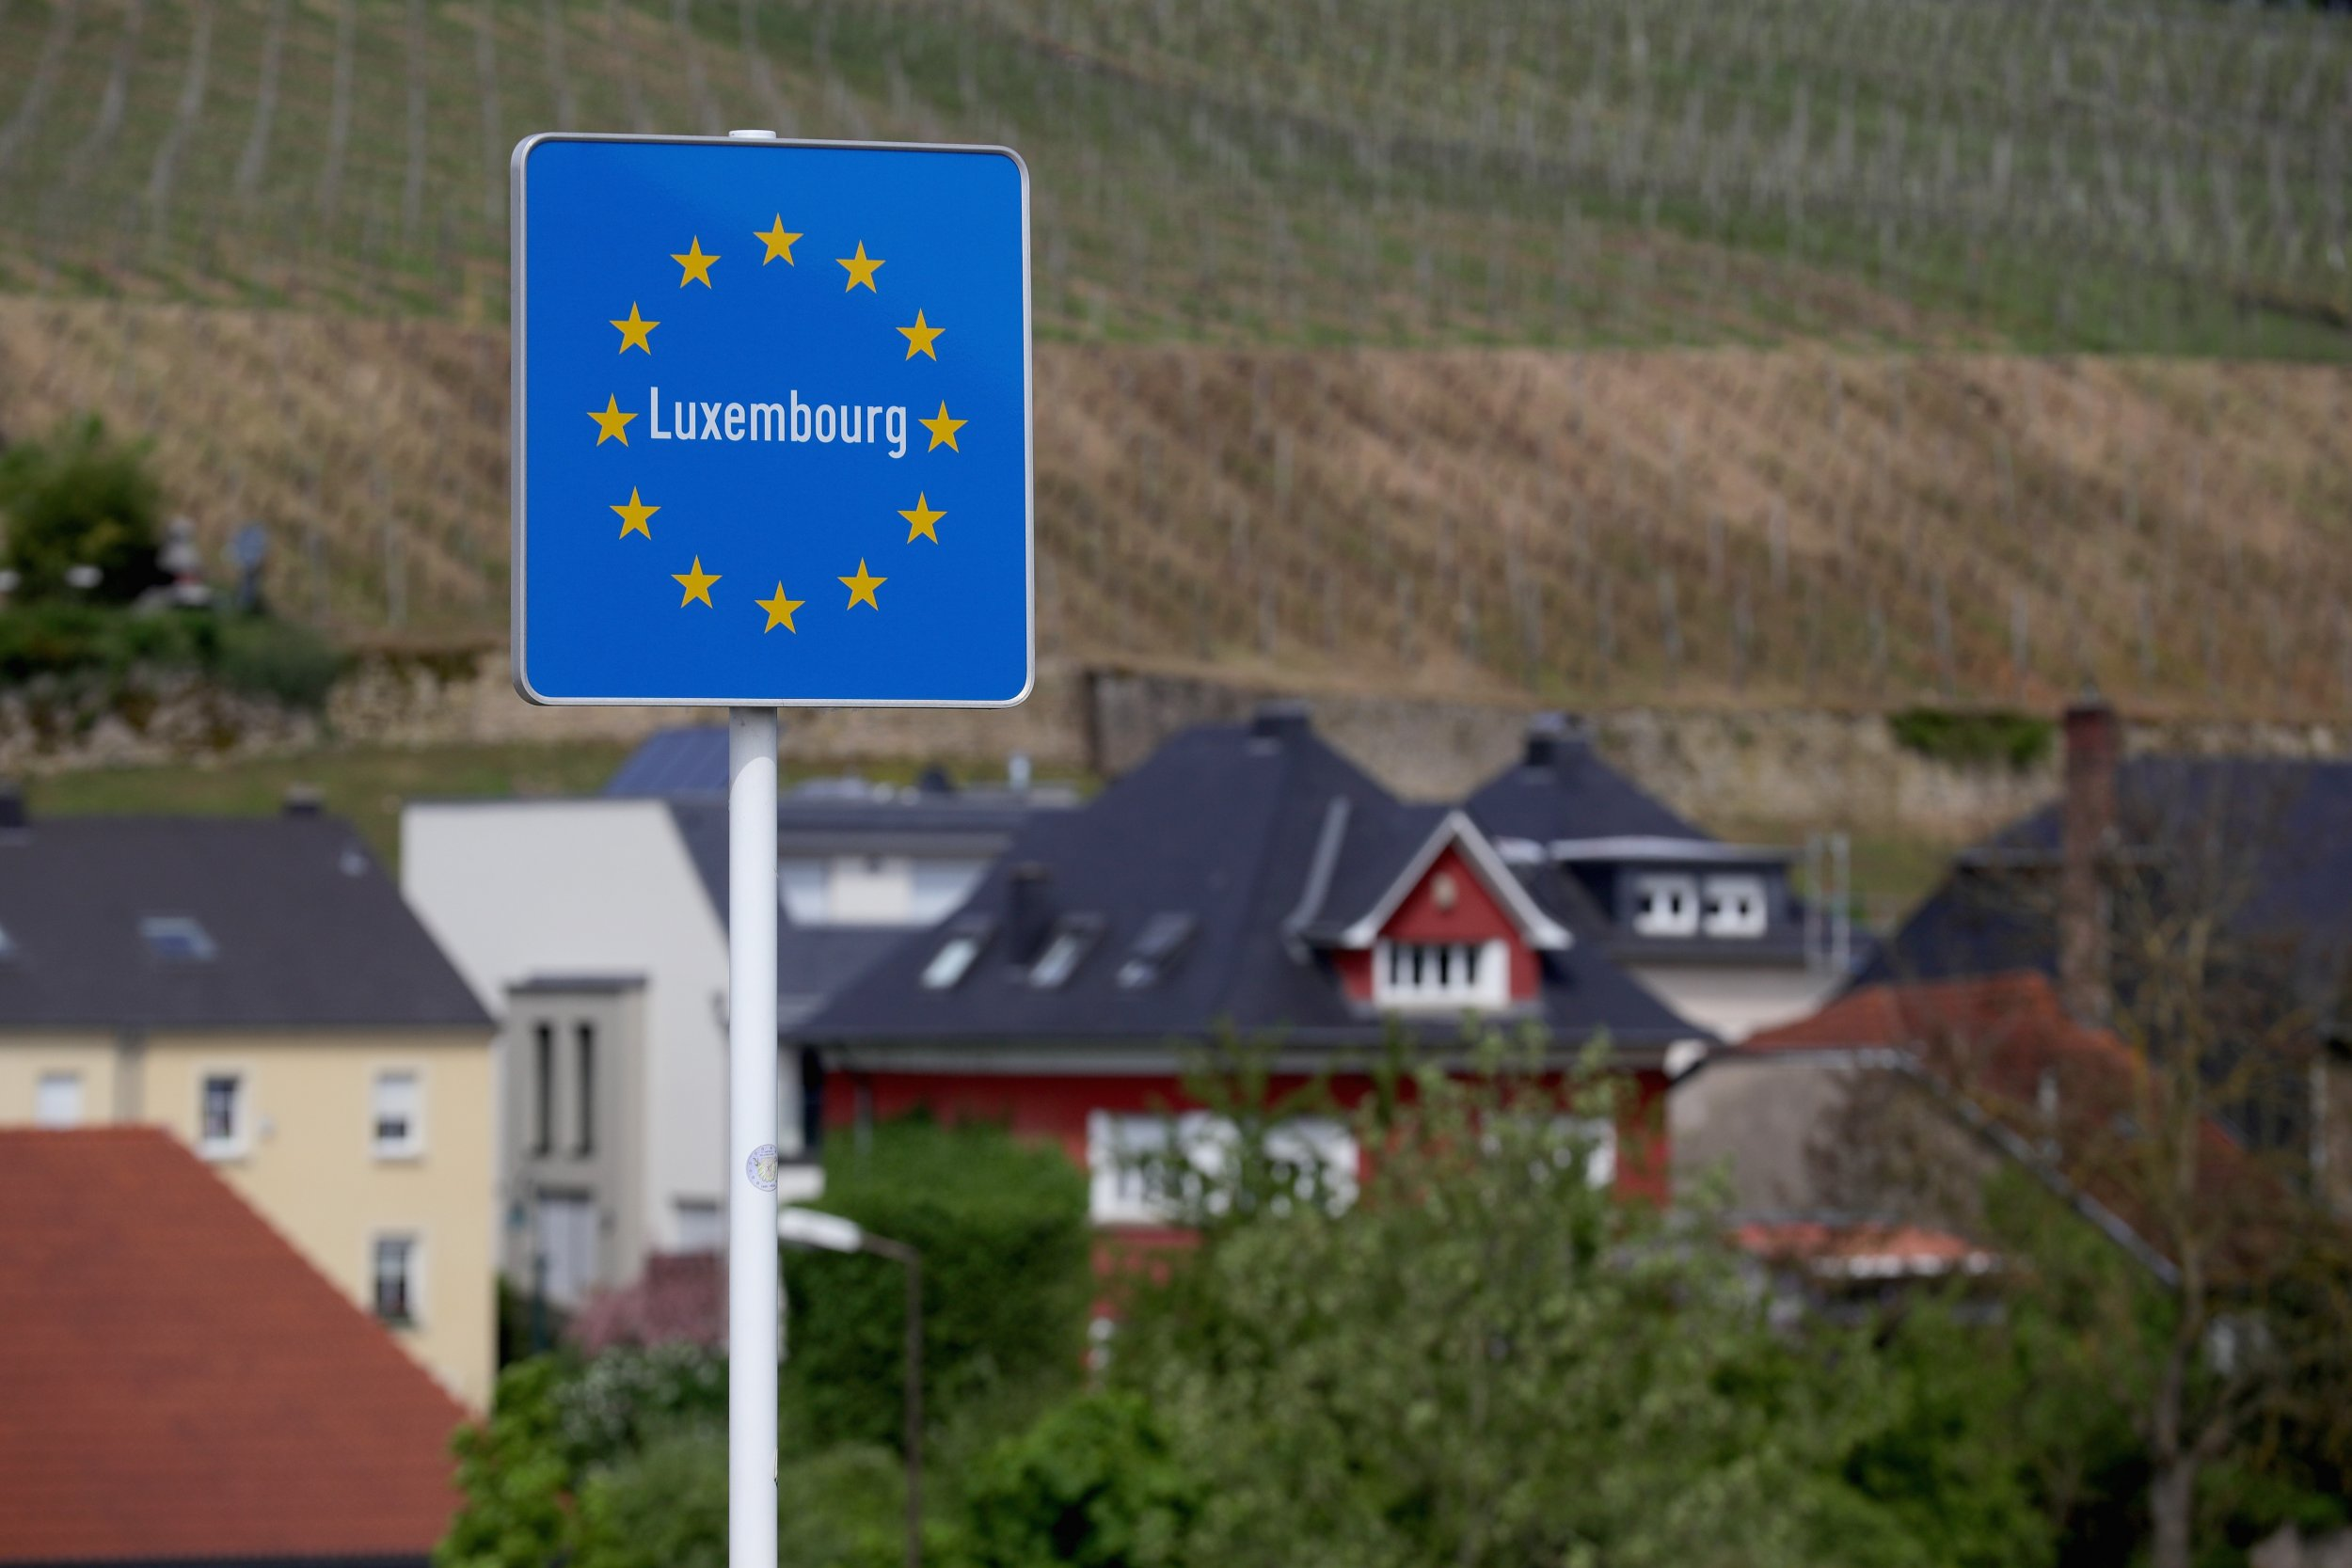 EU Referendum - The Schengen Agreement